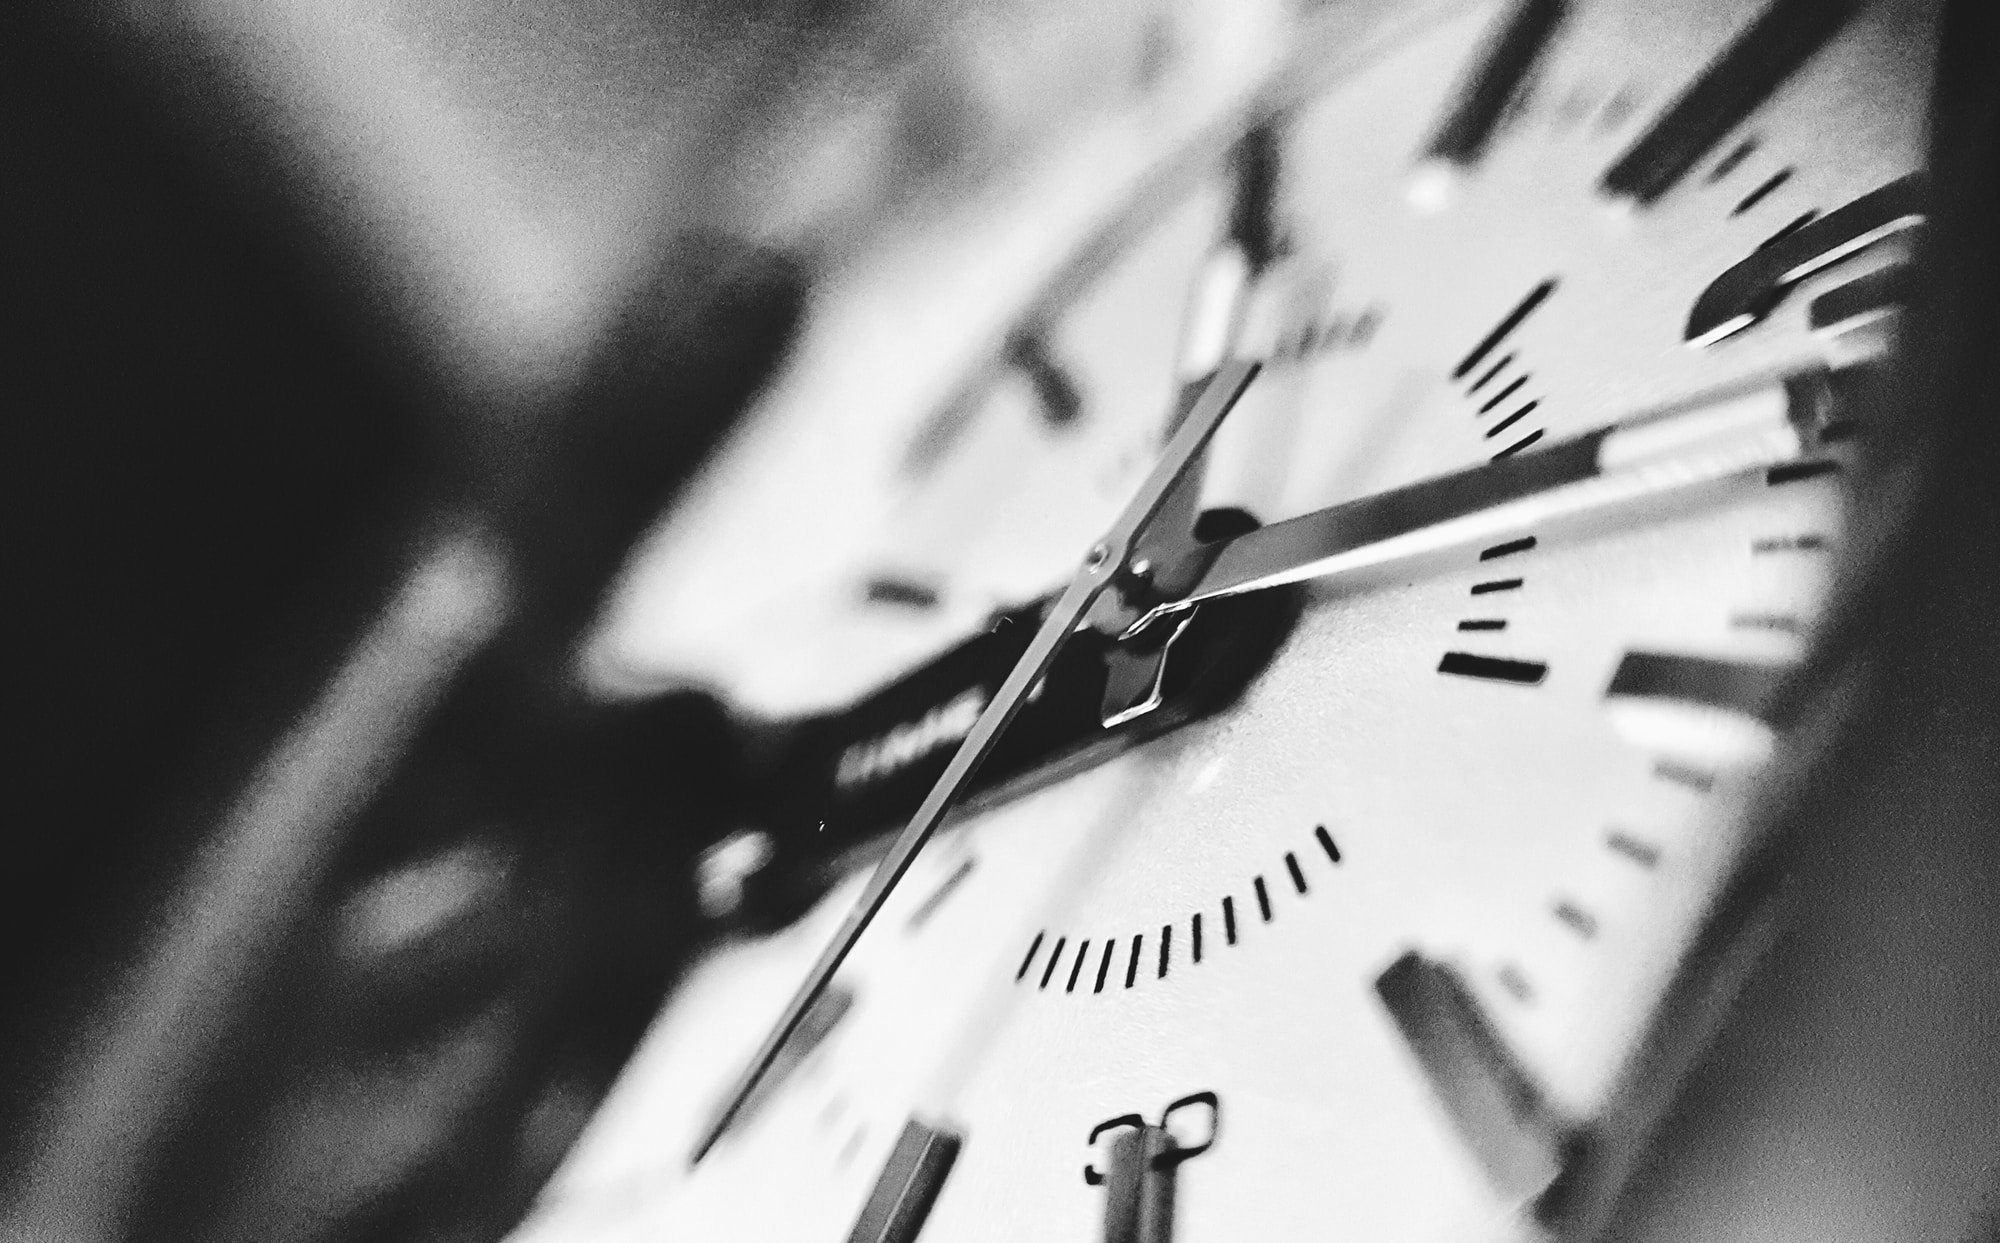 Digital Marketing Challenges - Time Span of Seeing The Good Outcome